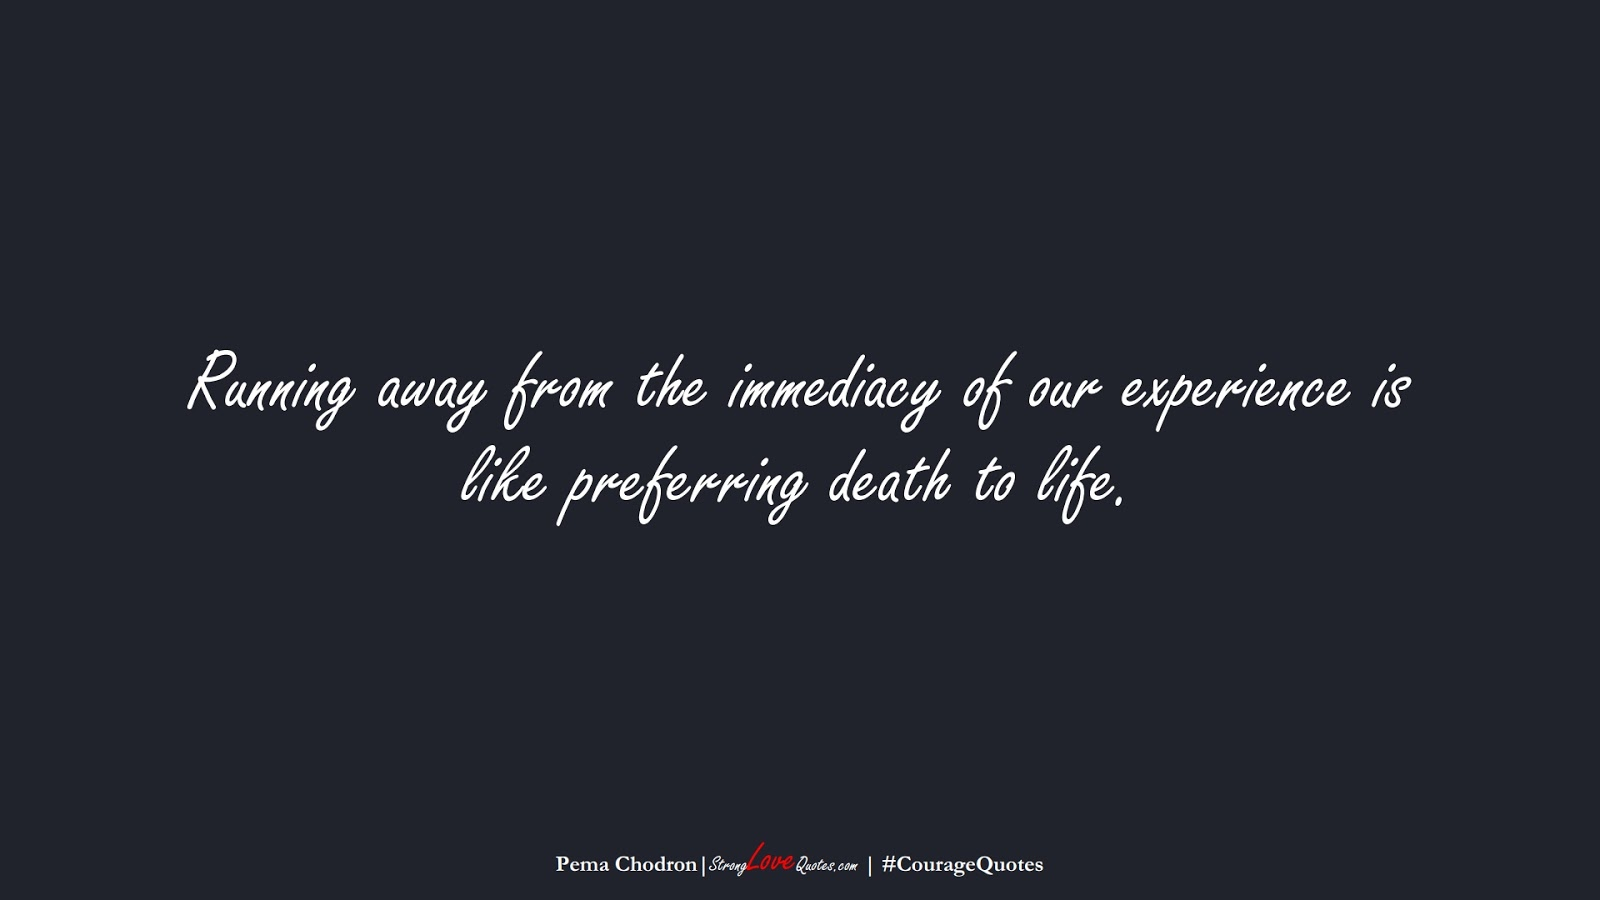 Running away from the immediacy of our experience is like preferring death to life. (Pema Chodron);  #CourageQuotes